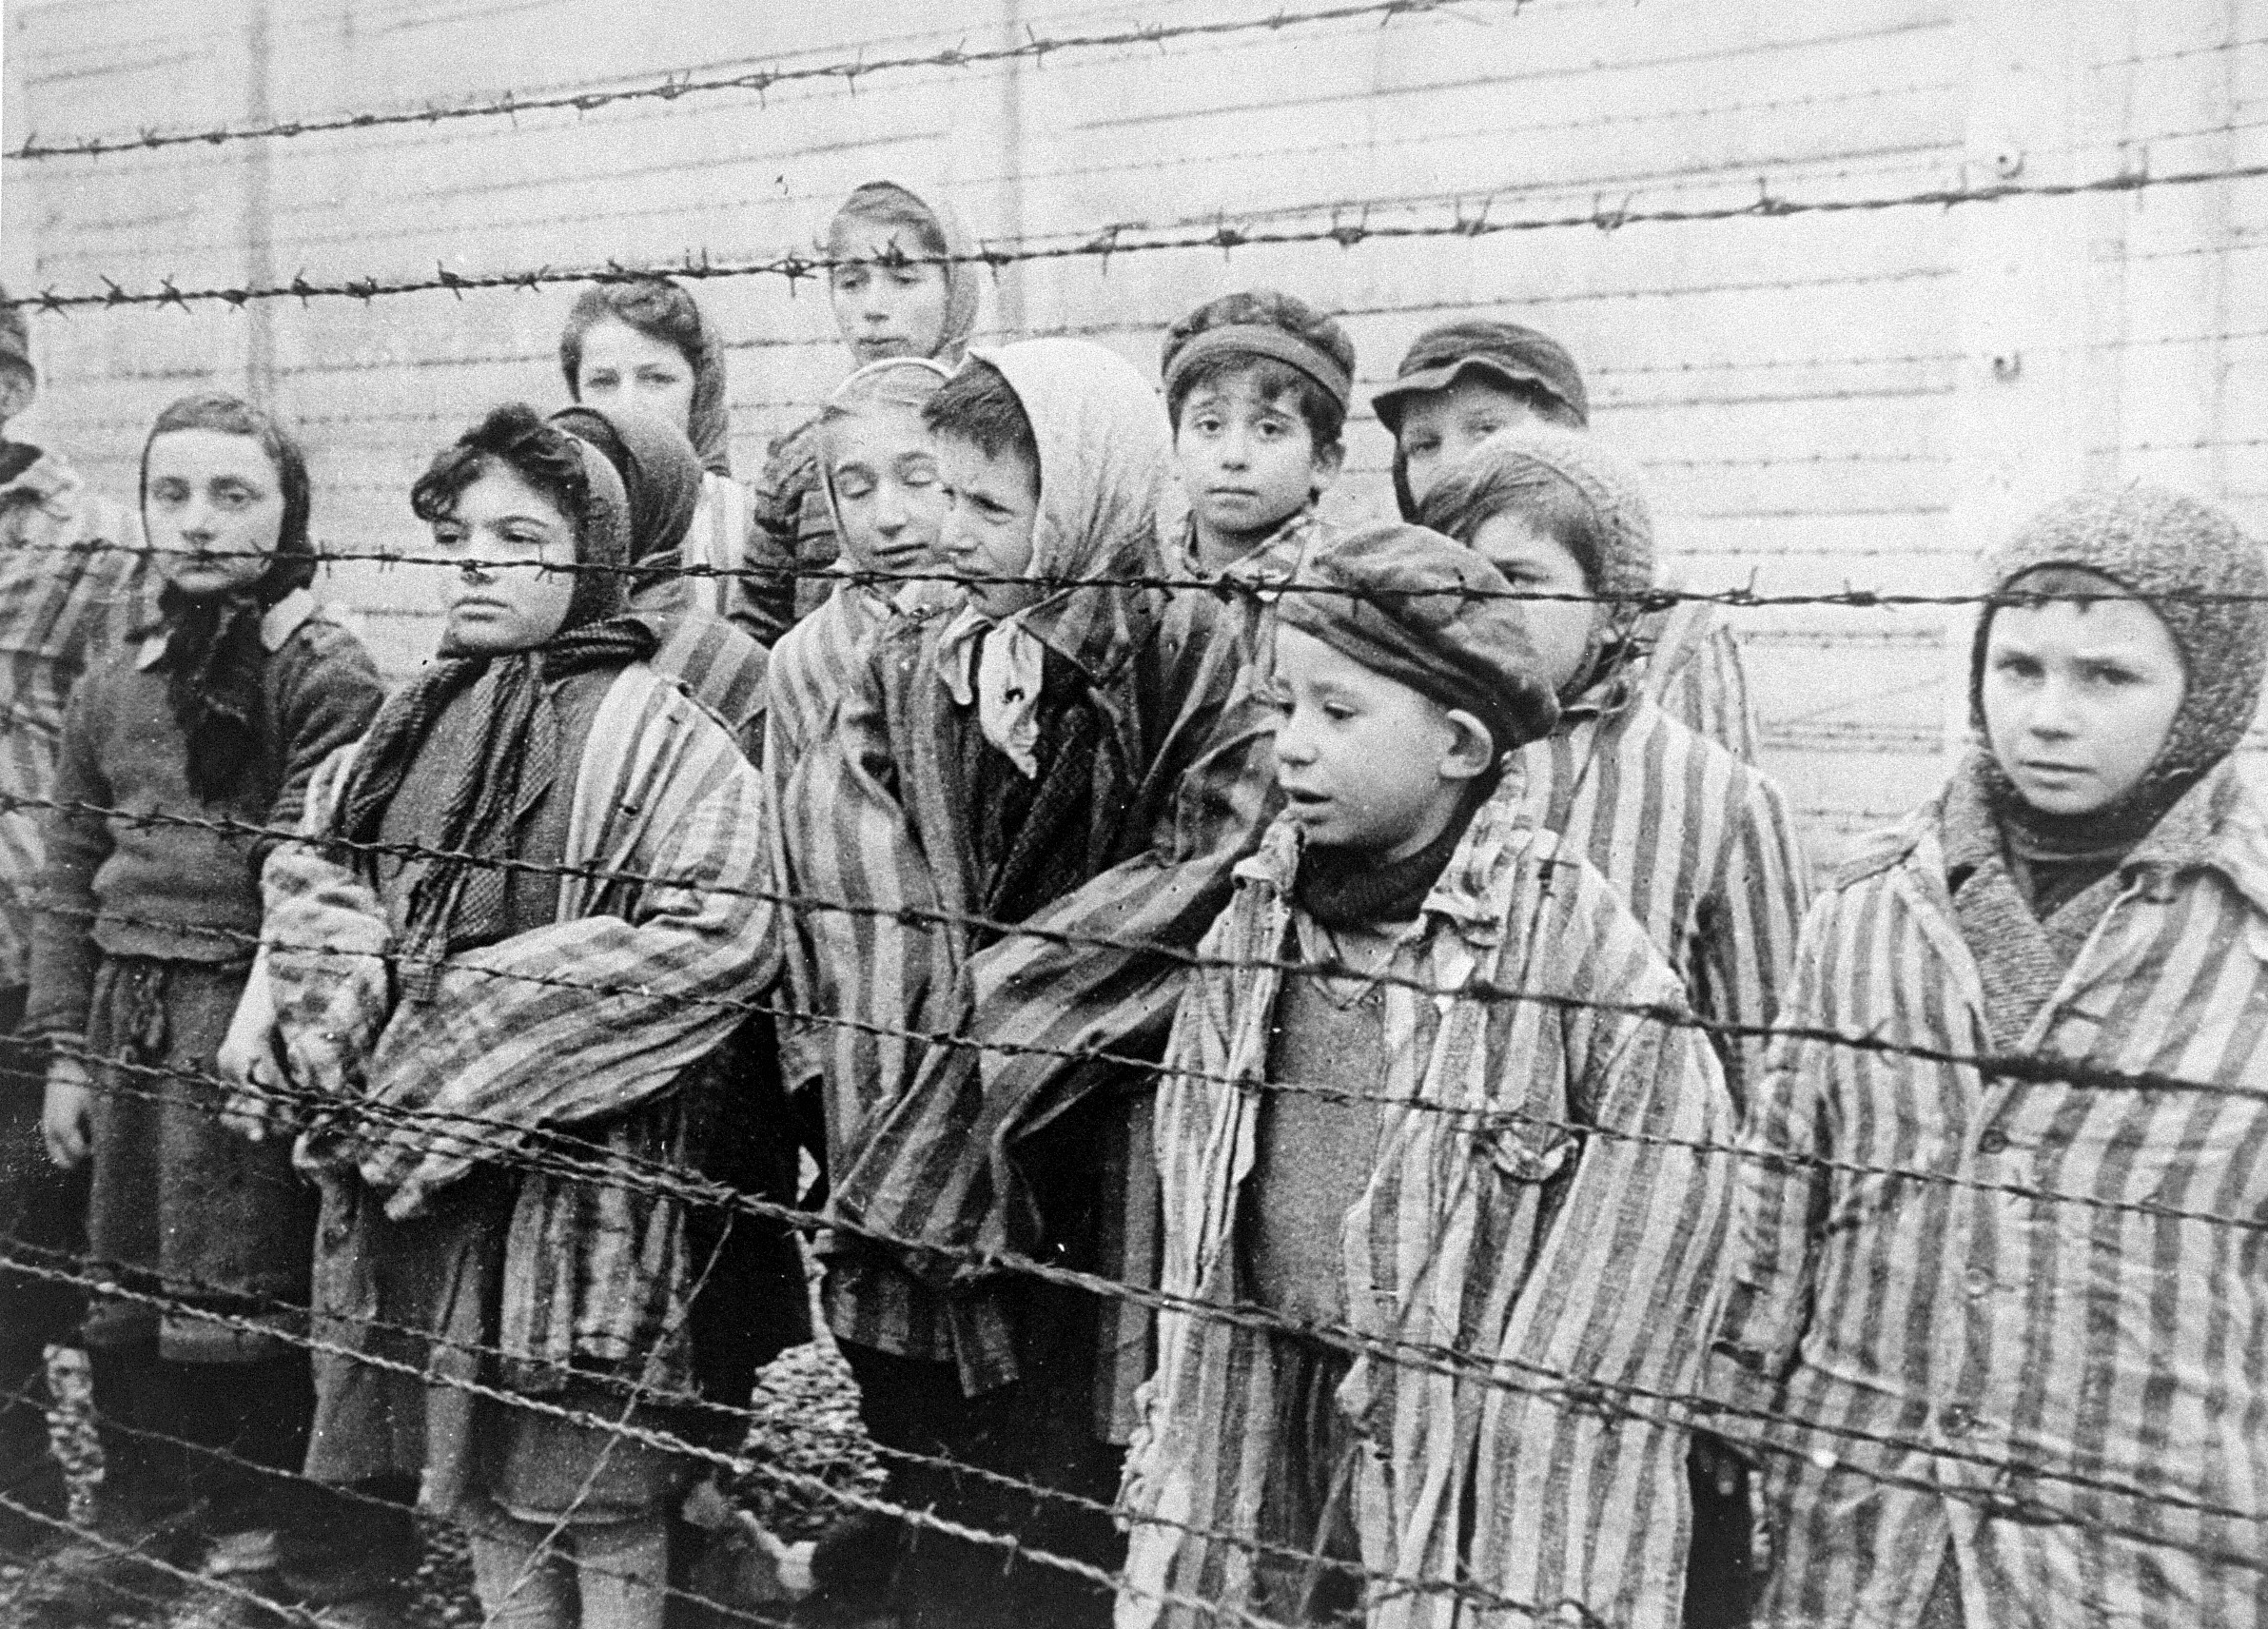 Jewish twins kept alive to be used in Mengele's medical experiments. These children were liberated from Auschwitz by the Red Army in January 1945.